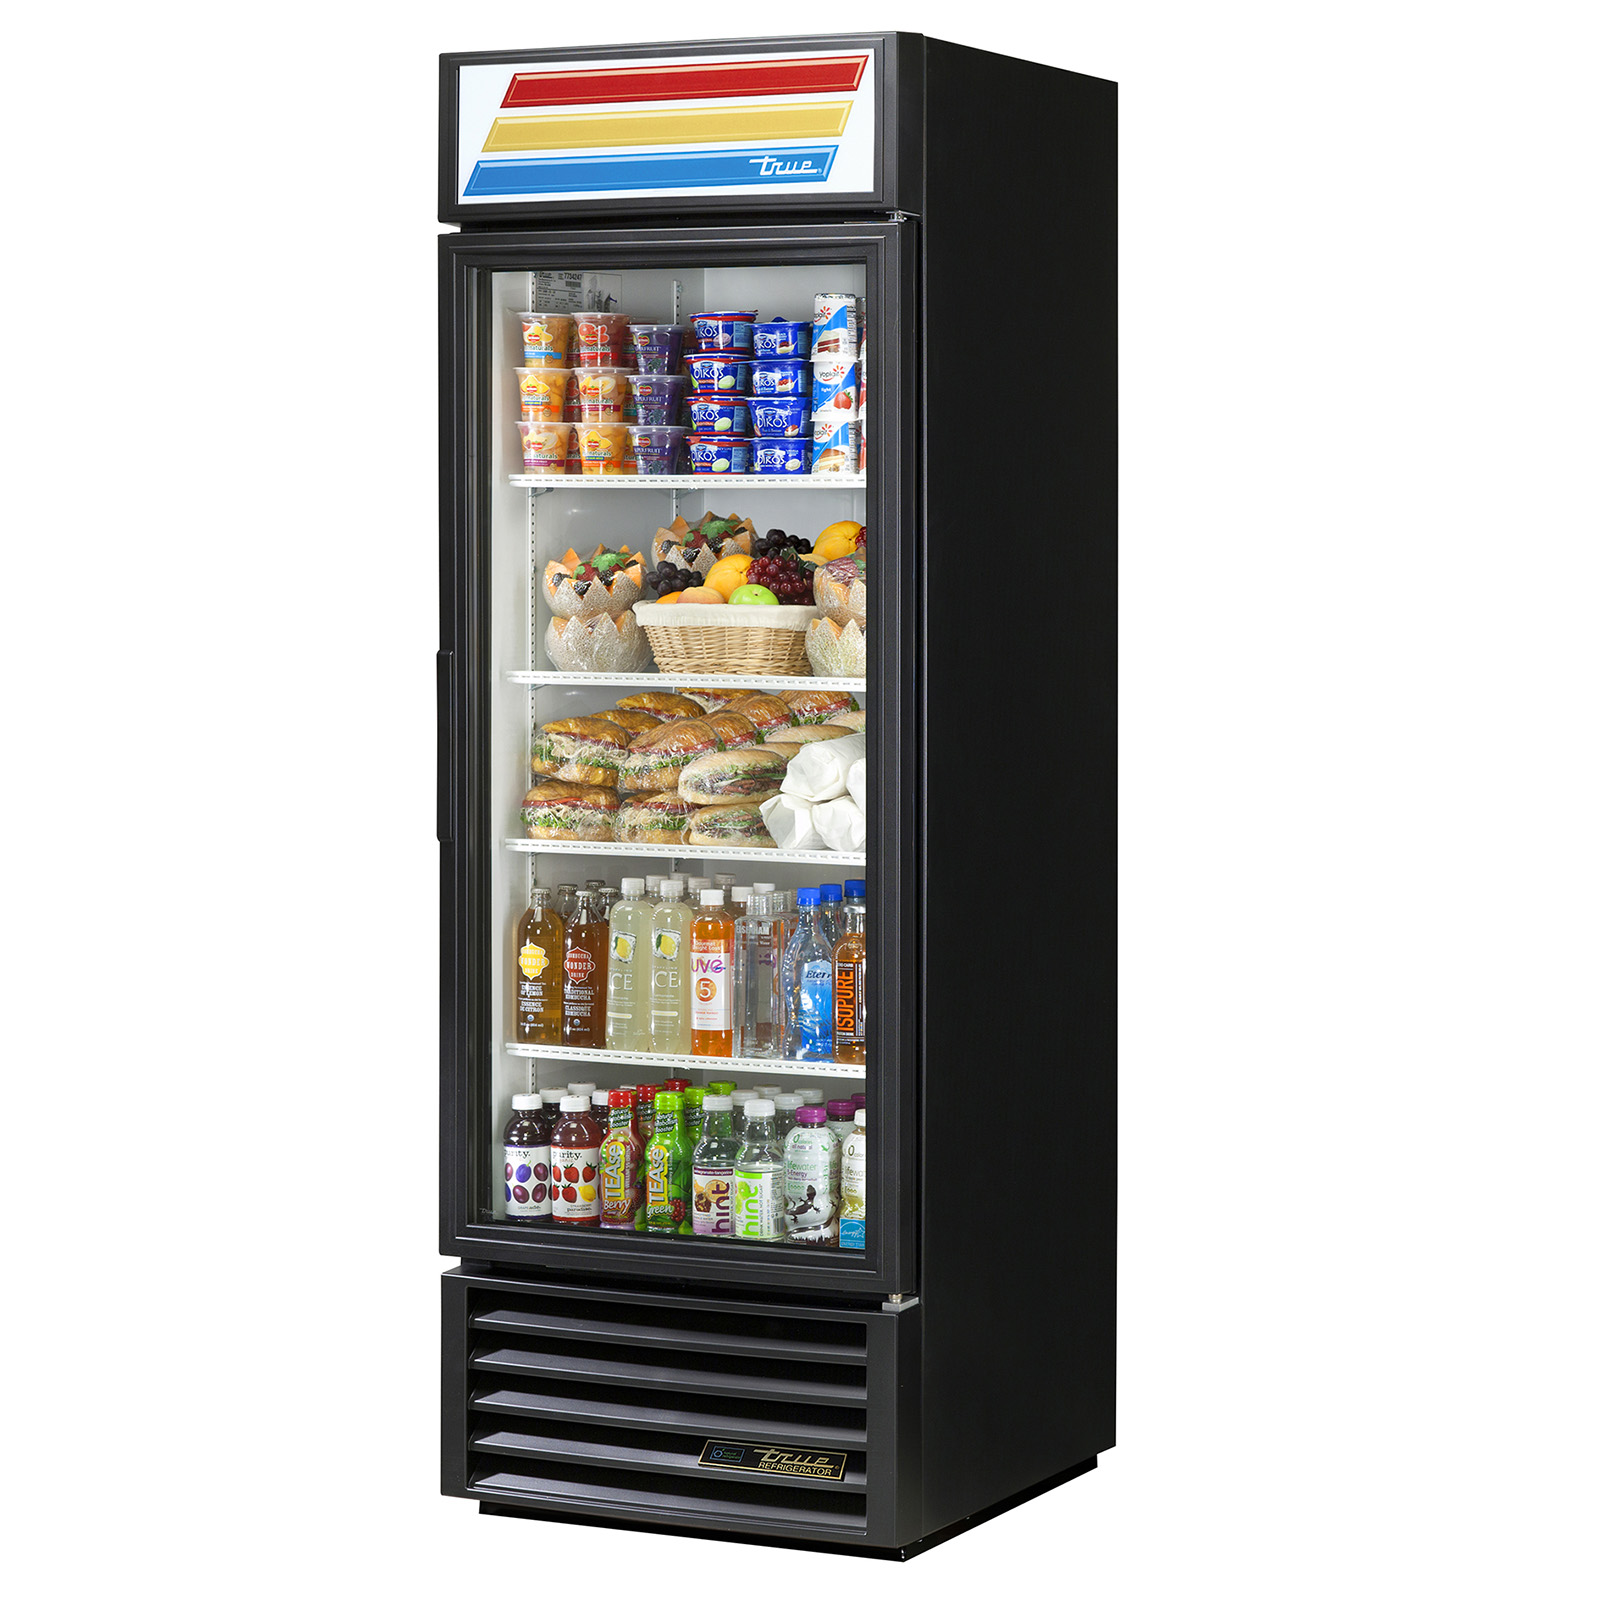 GDM-23-HC-LD True - Refrigerated Merchandiser one-section